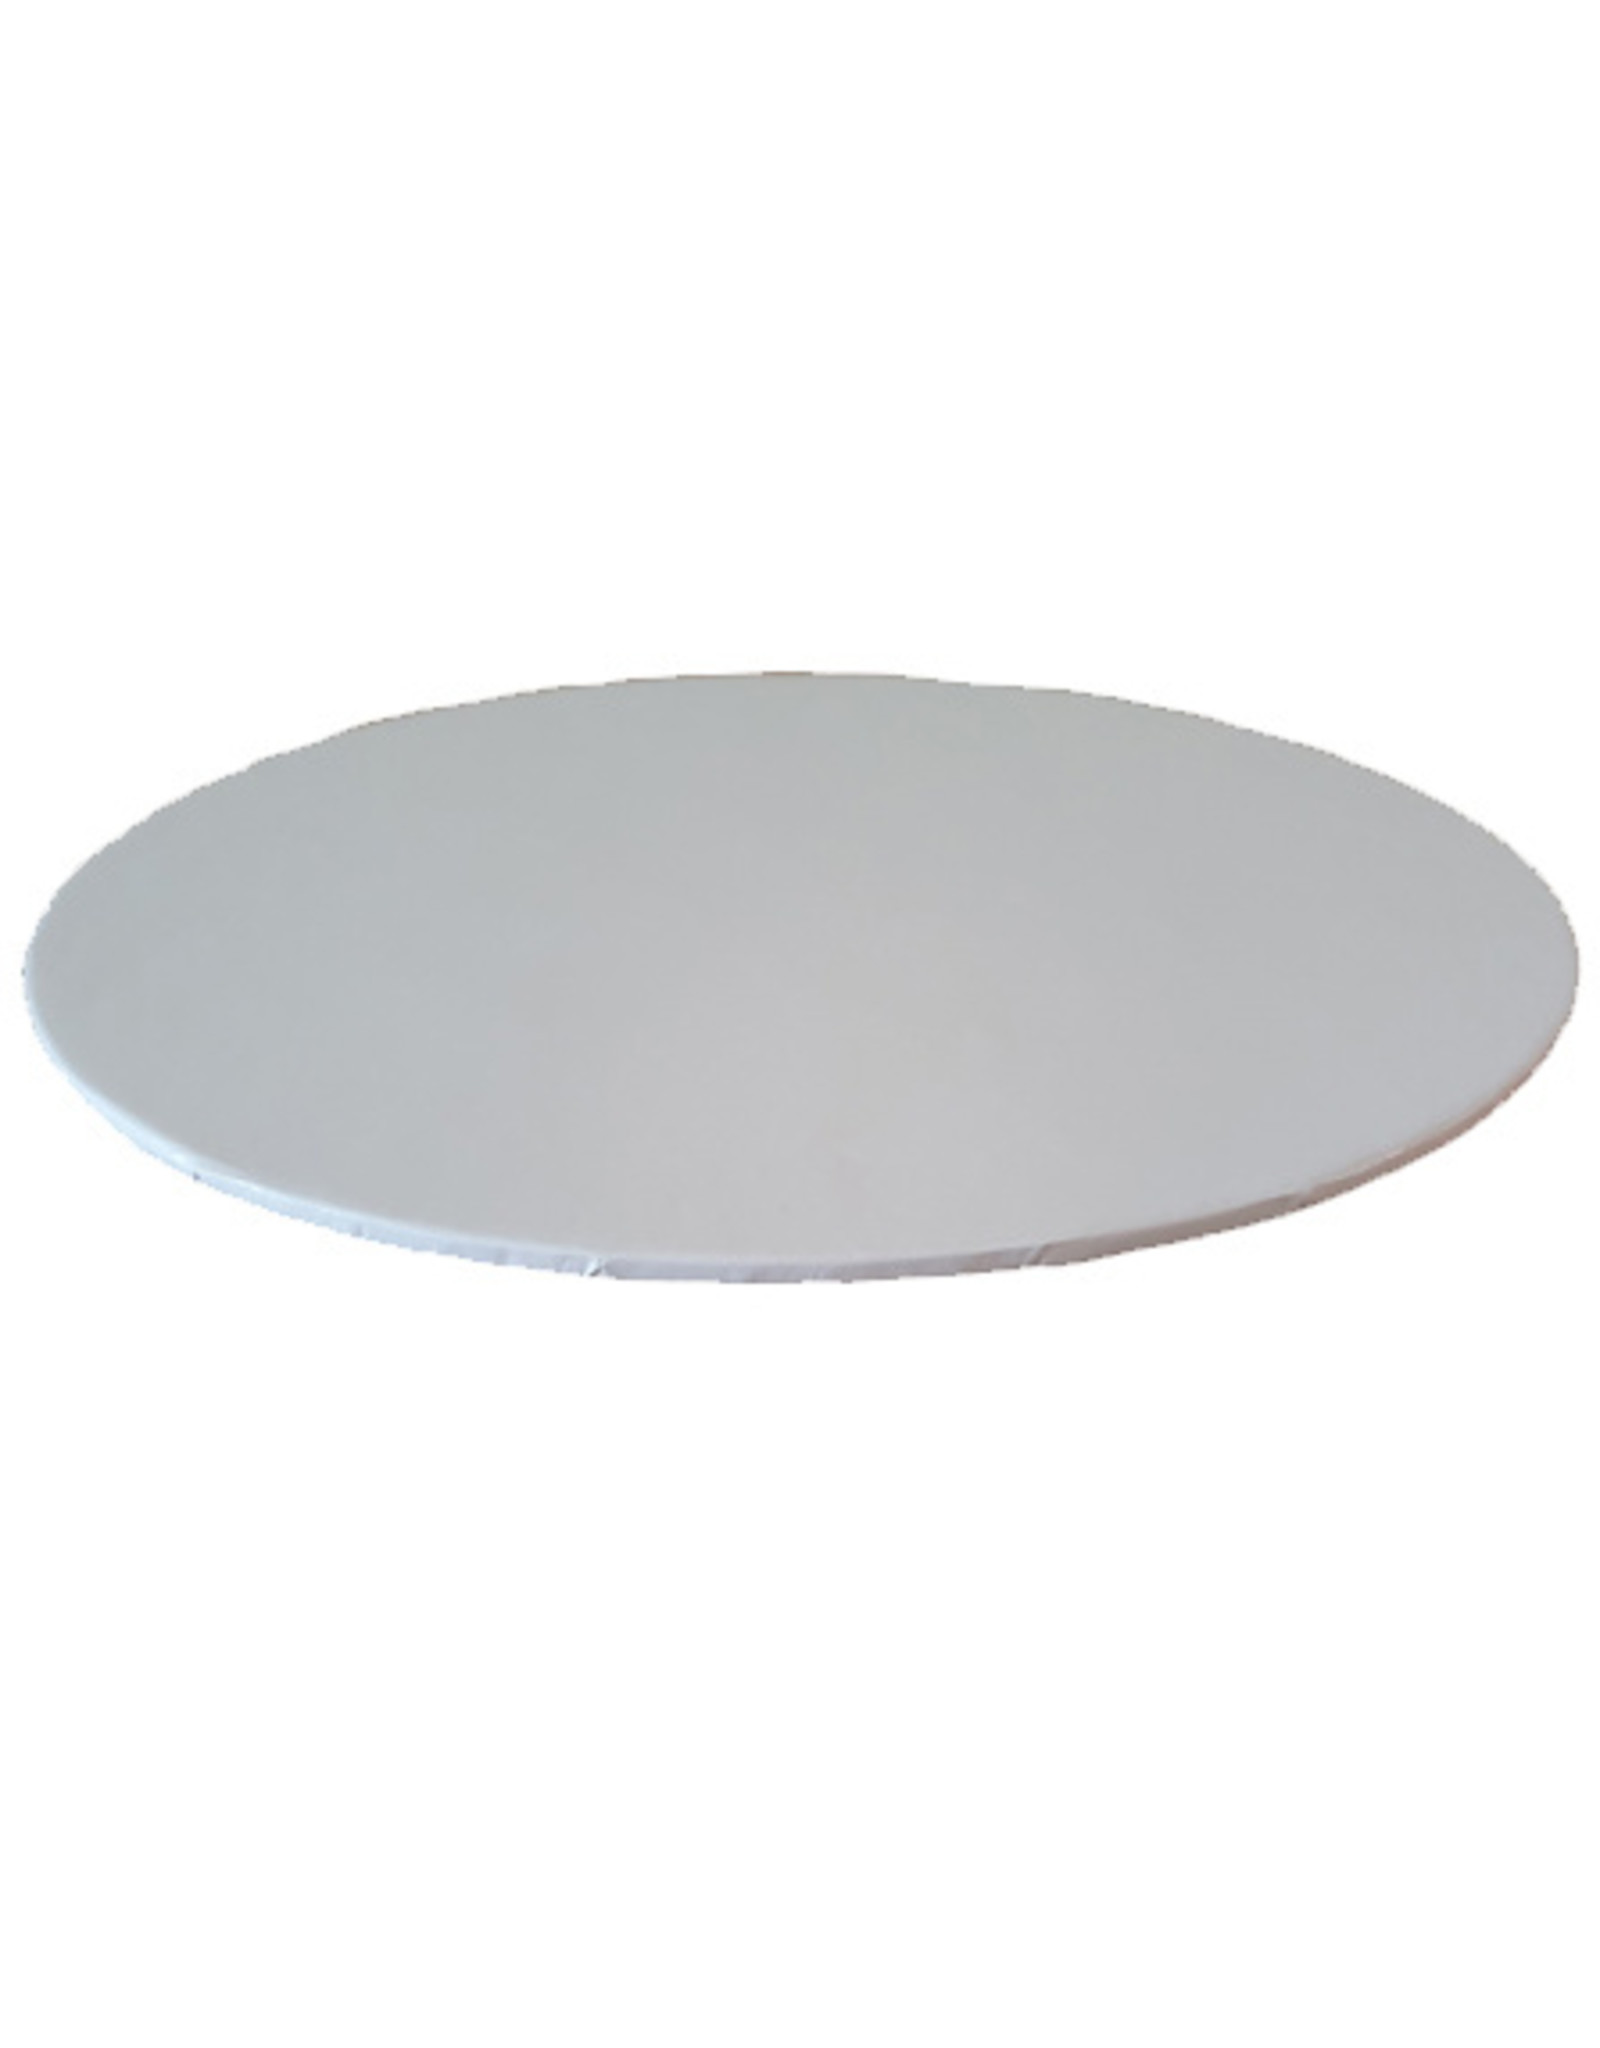 Cakeboards Ø25 cm - white (per 10 pieces)